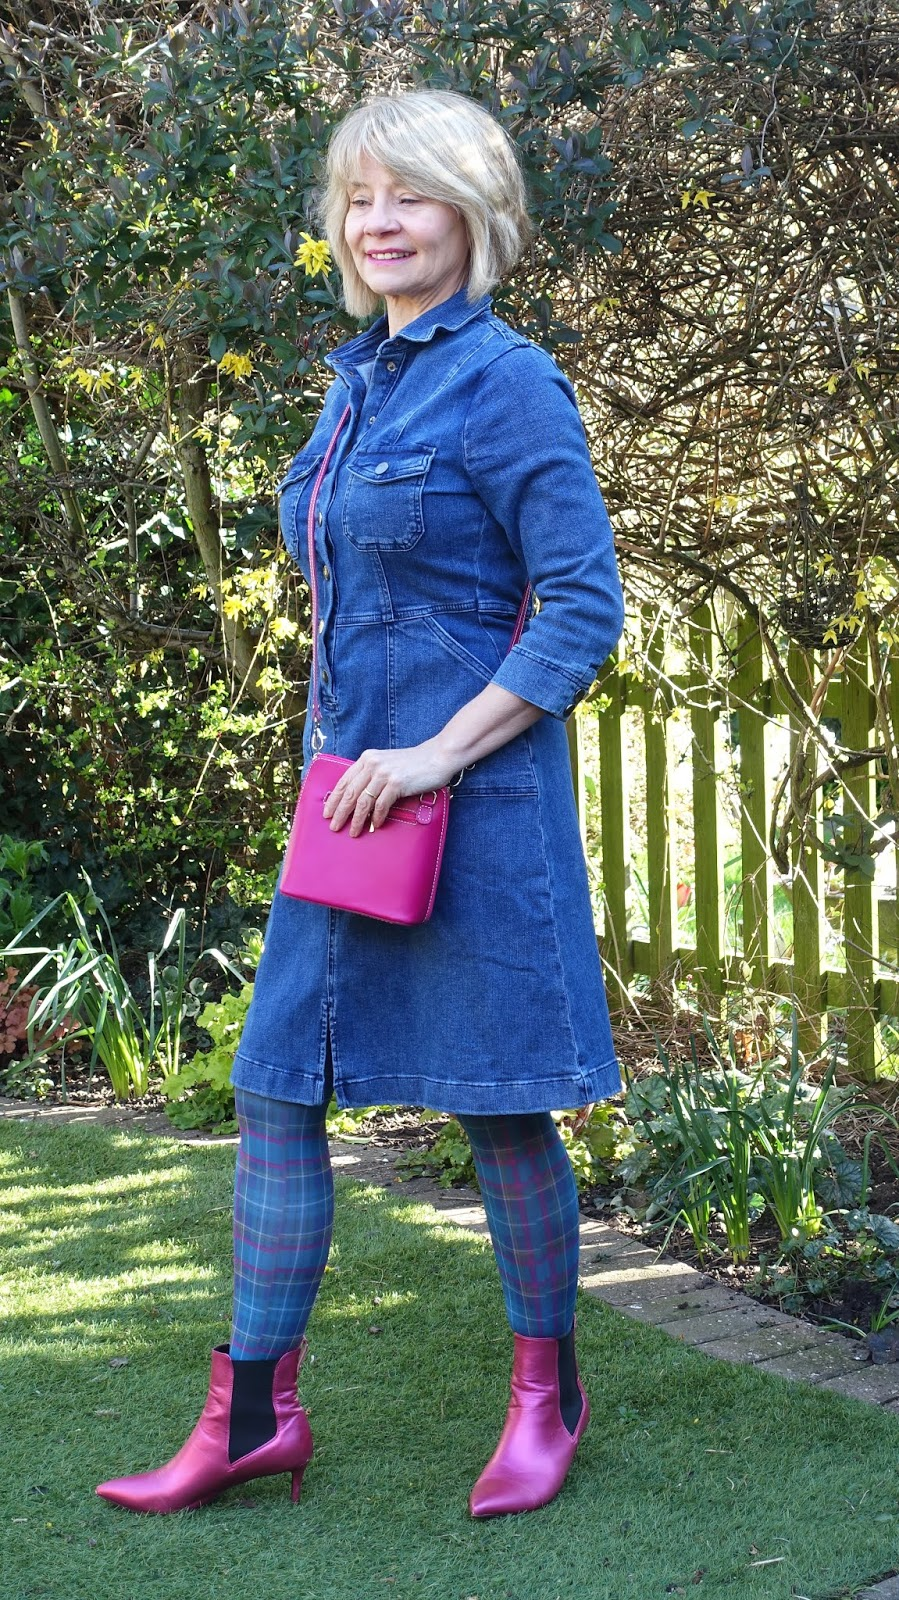 Tartan tights and pink accessories worn with a denim dress by Sosandar for spring-summer 2020 by over-50s style blogger Gail Hanlon